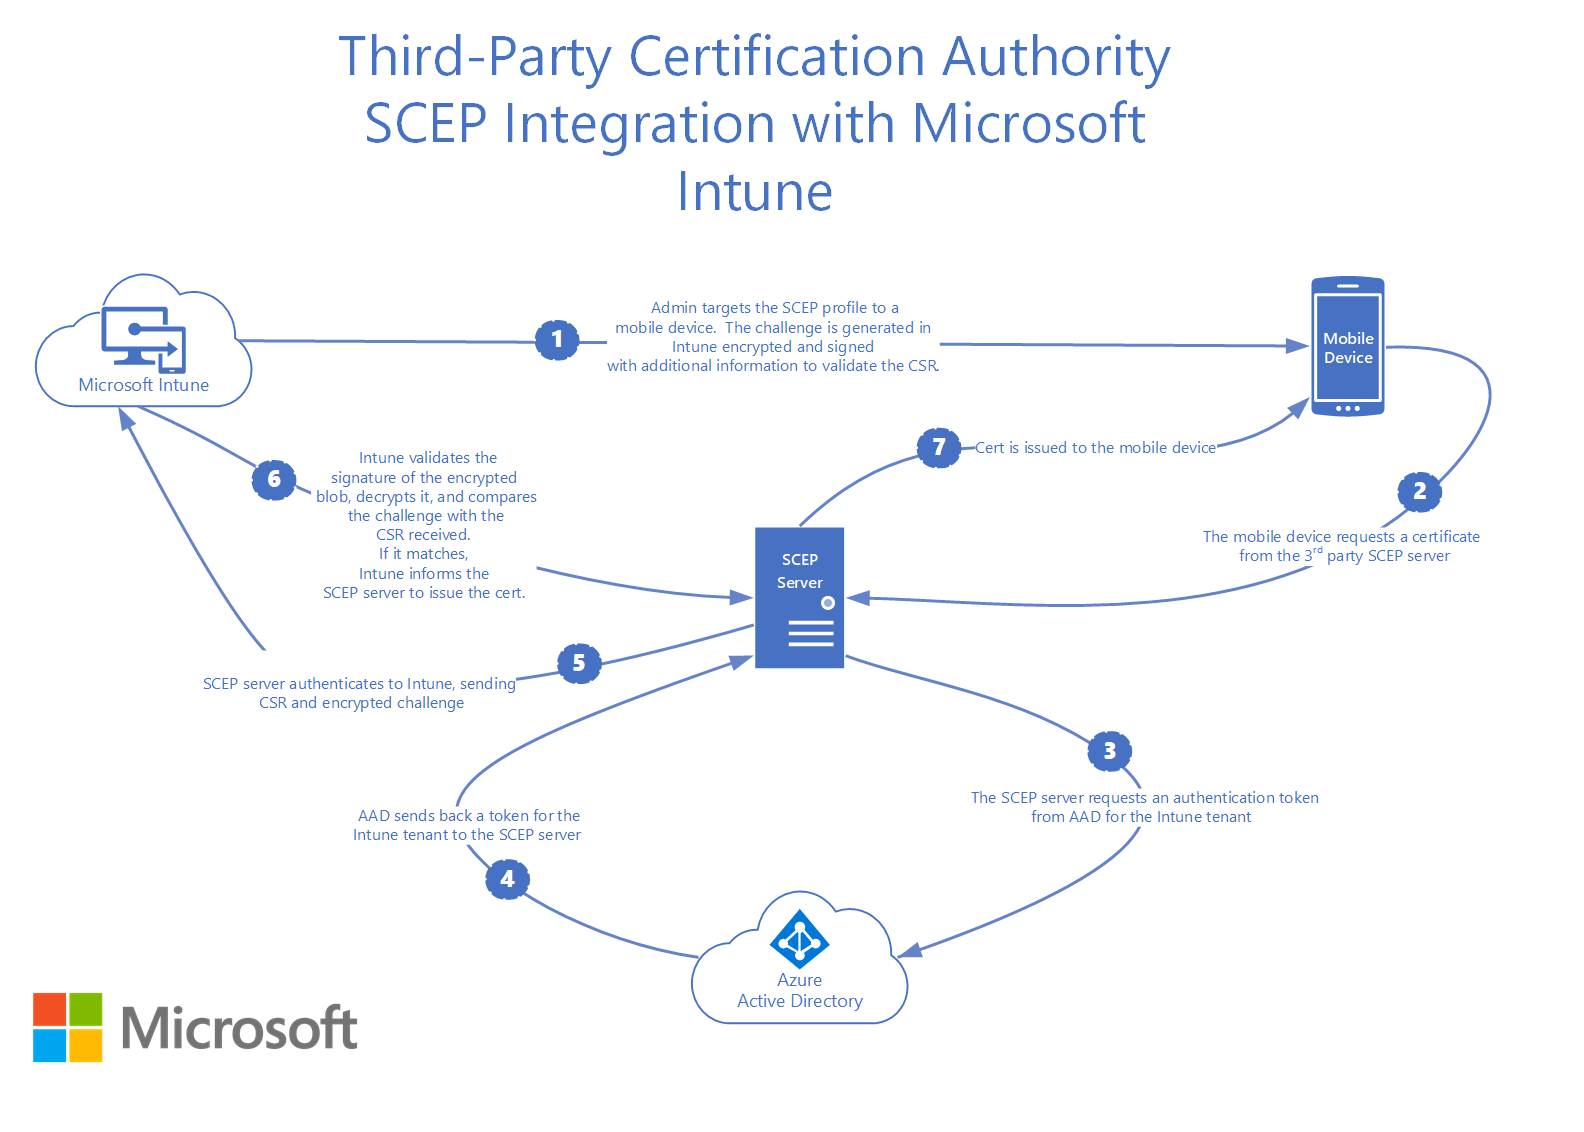 List of 3rd Party Certification Authority Partners for SCEP with Intune with Microsoft Intune